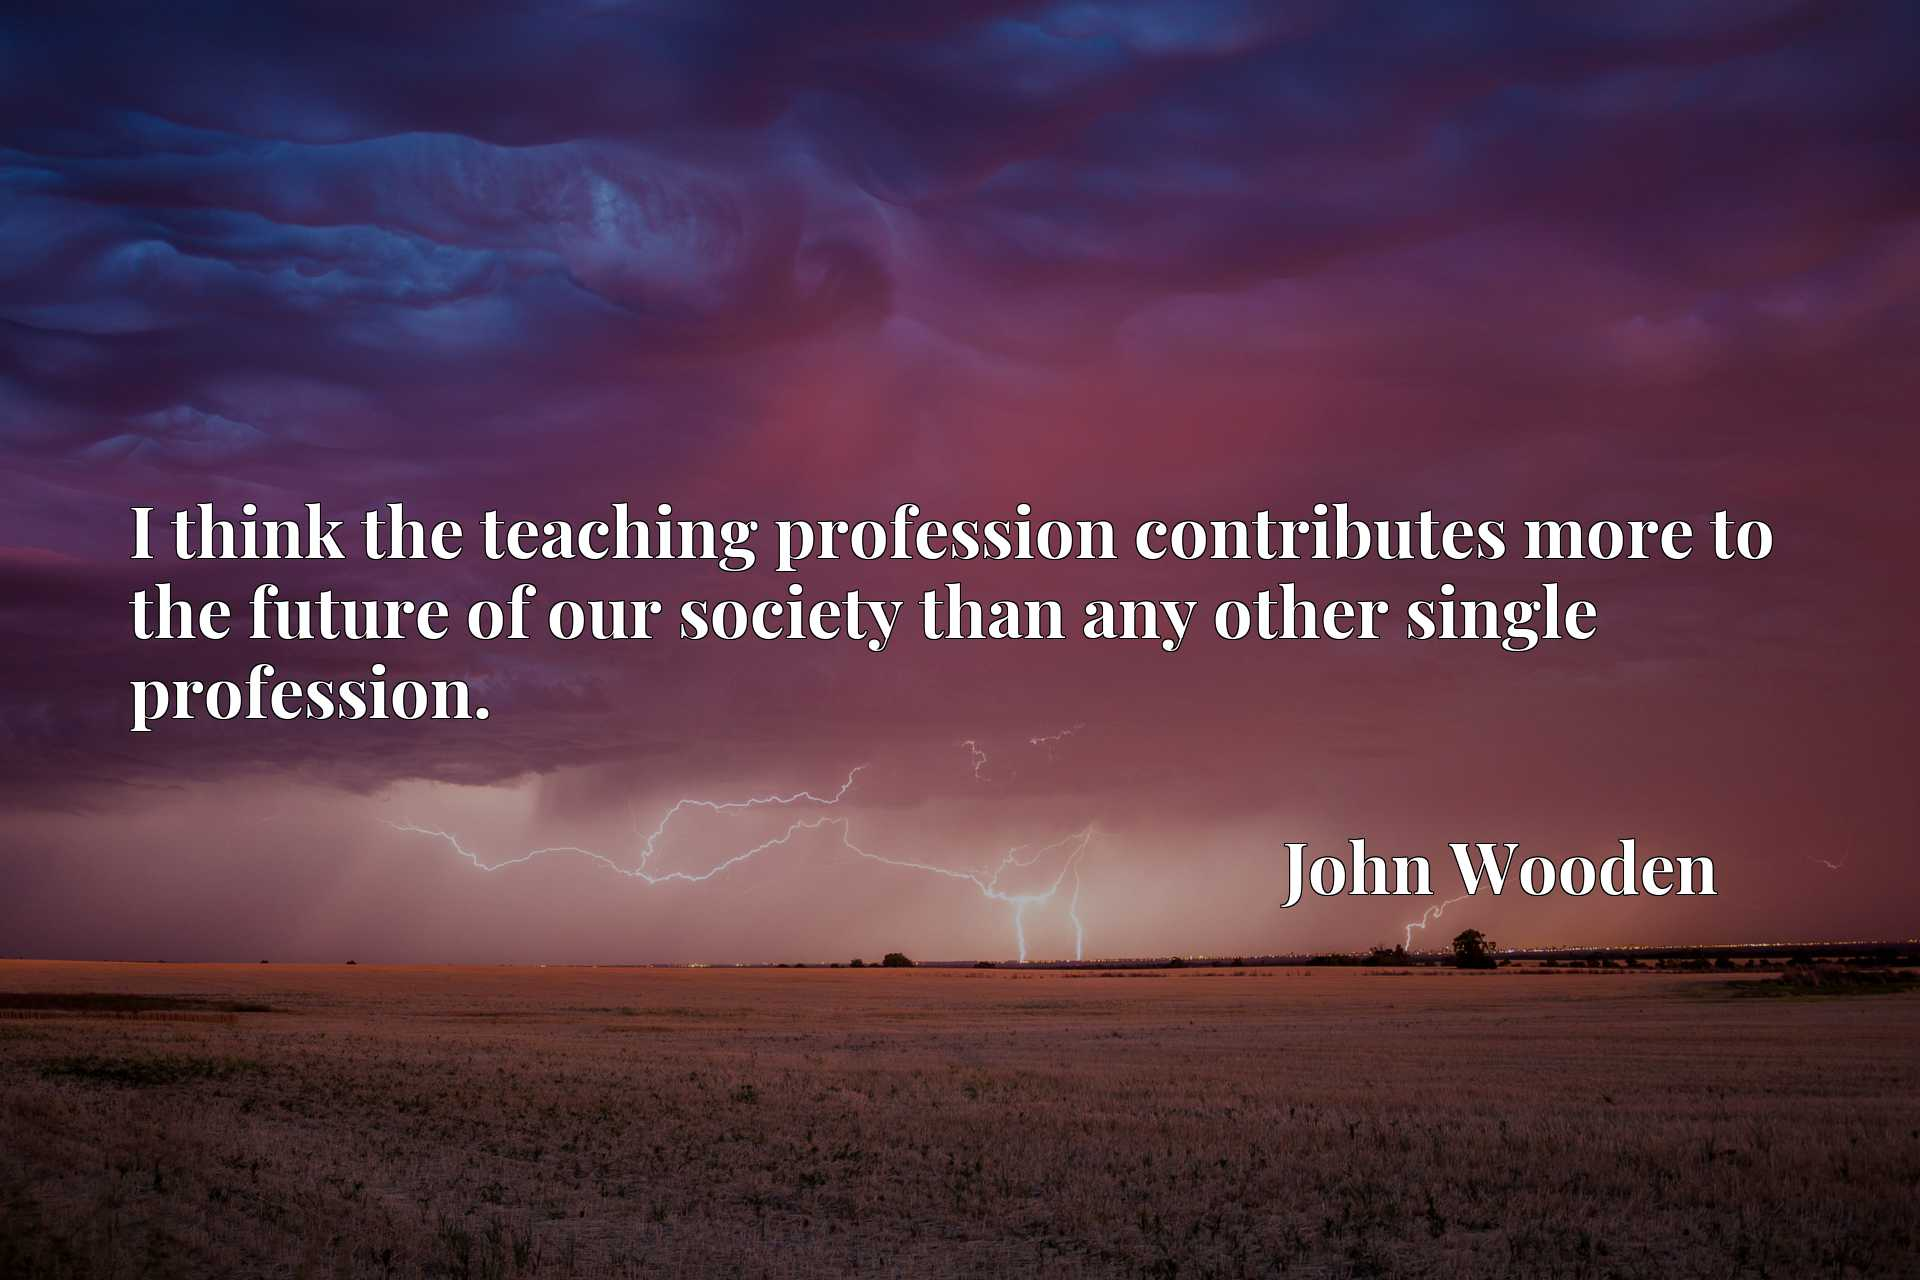 I think the teaching profession contributes more to the future of our society than any other single profession.